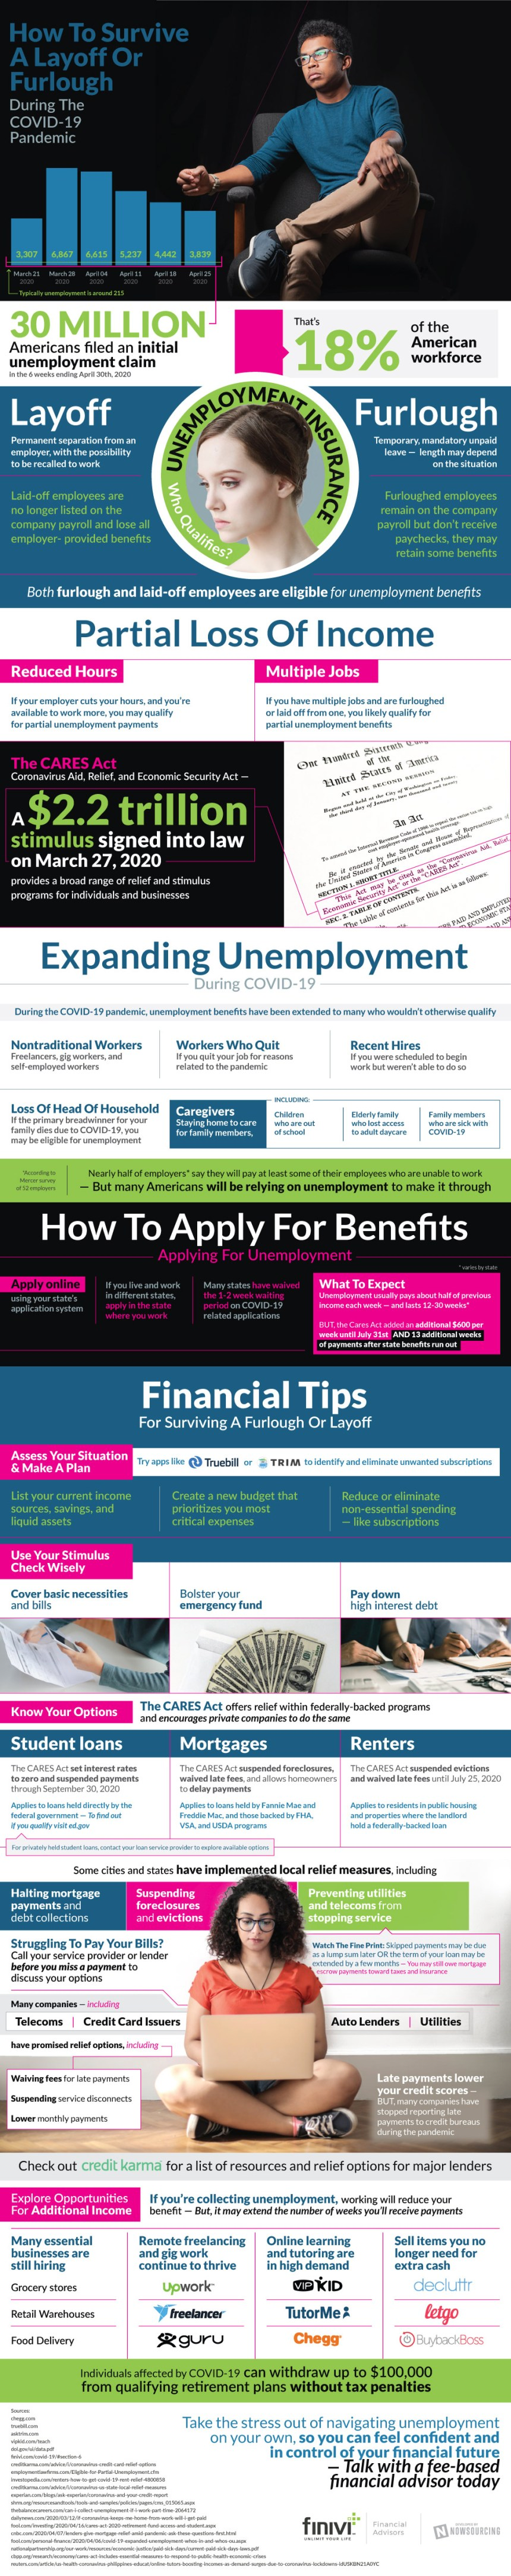 How to Survive a Layoff or Furlough (infographic)